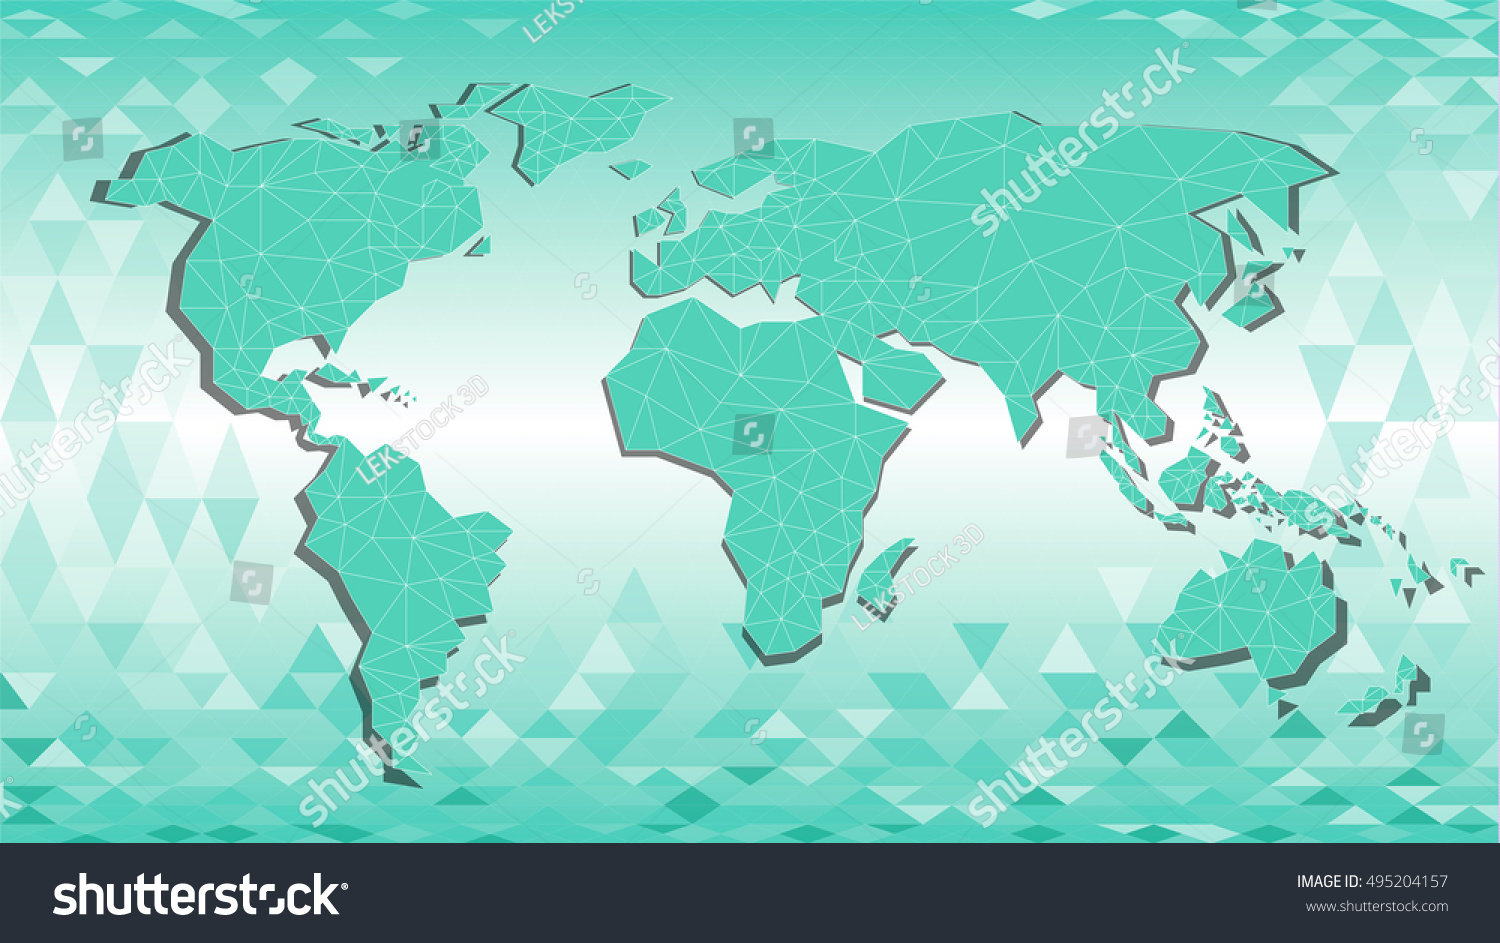 Polygonal abstract world map triangle line stock vector 495204157 polygonal abstract world map triangle line stock vector 495204157 shutterstock gumiabroncs Gallery